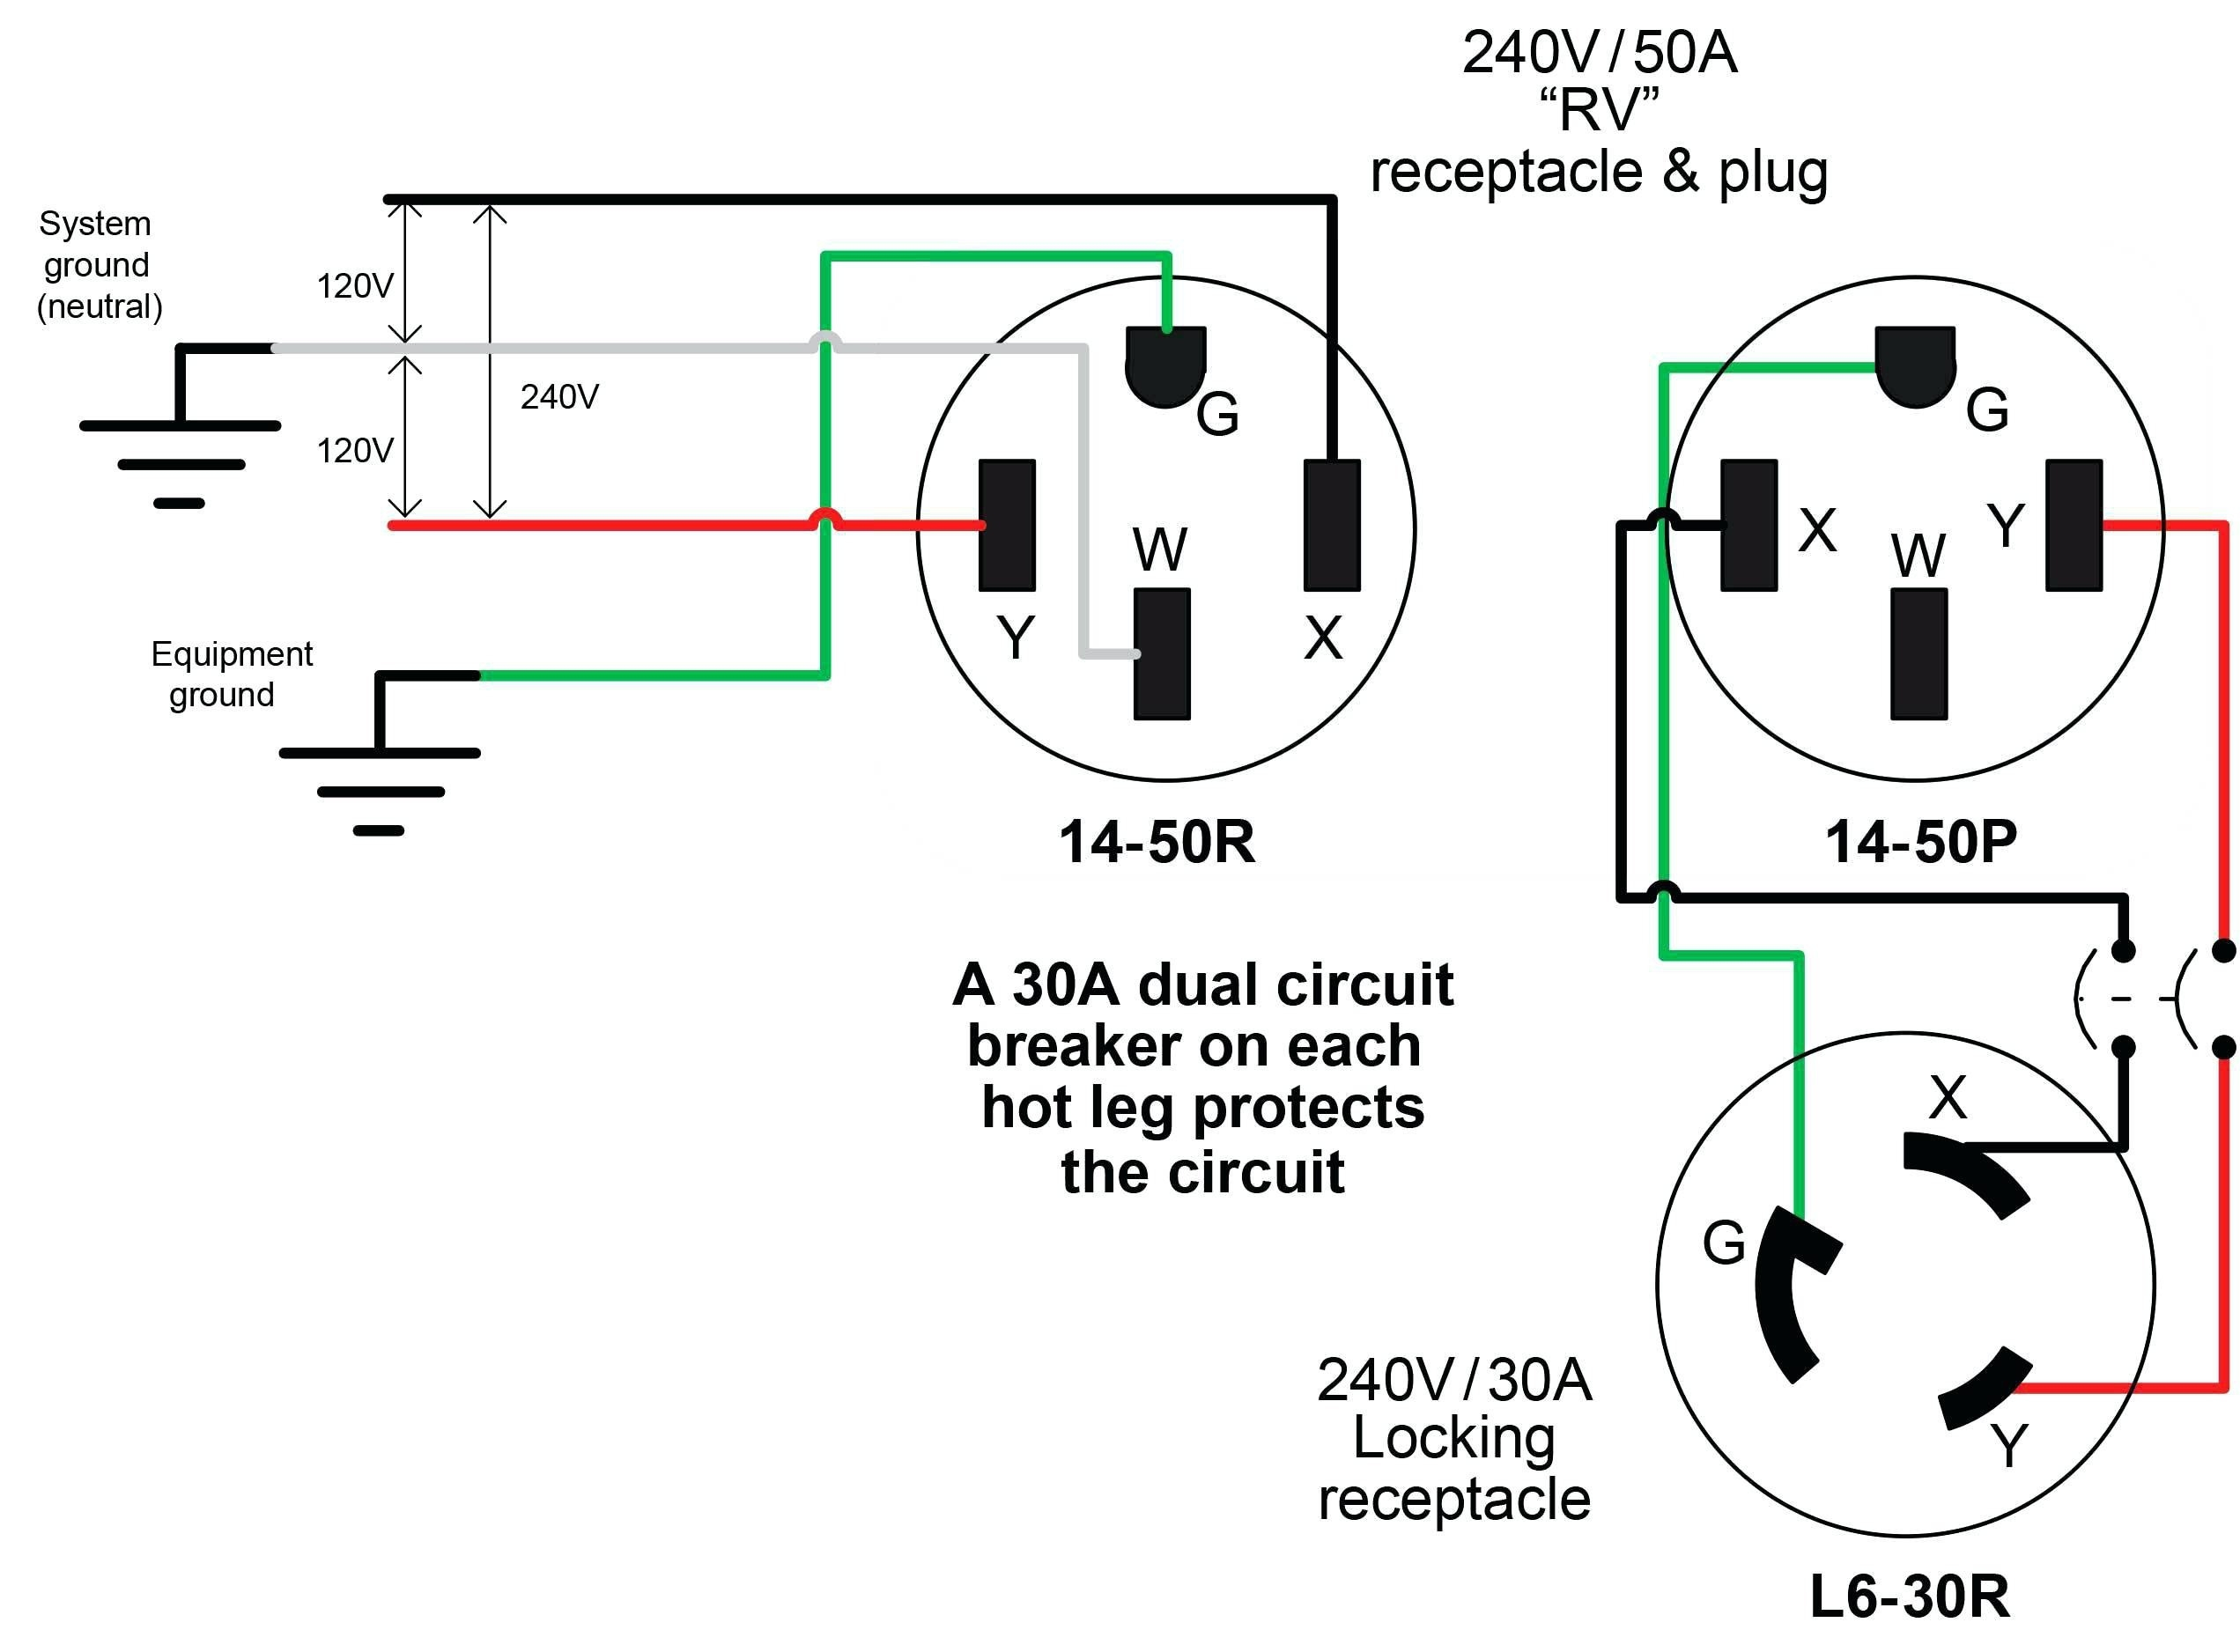 DIAGRAM] 230 208 Volt Receptacle Wiring Diagram FULL Version HD Quality Wiring  Diagram - THEDIAGRAMGURU.AMANDINE-BREVELAY.FRthediagramguru.amandine-brevelay.fr